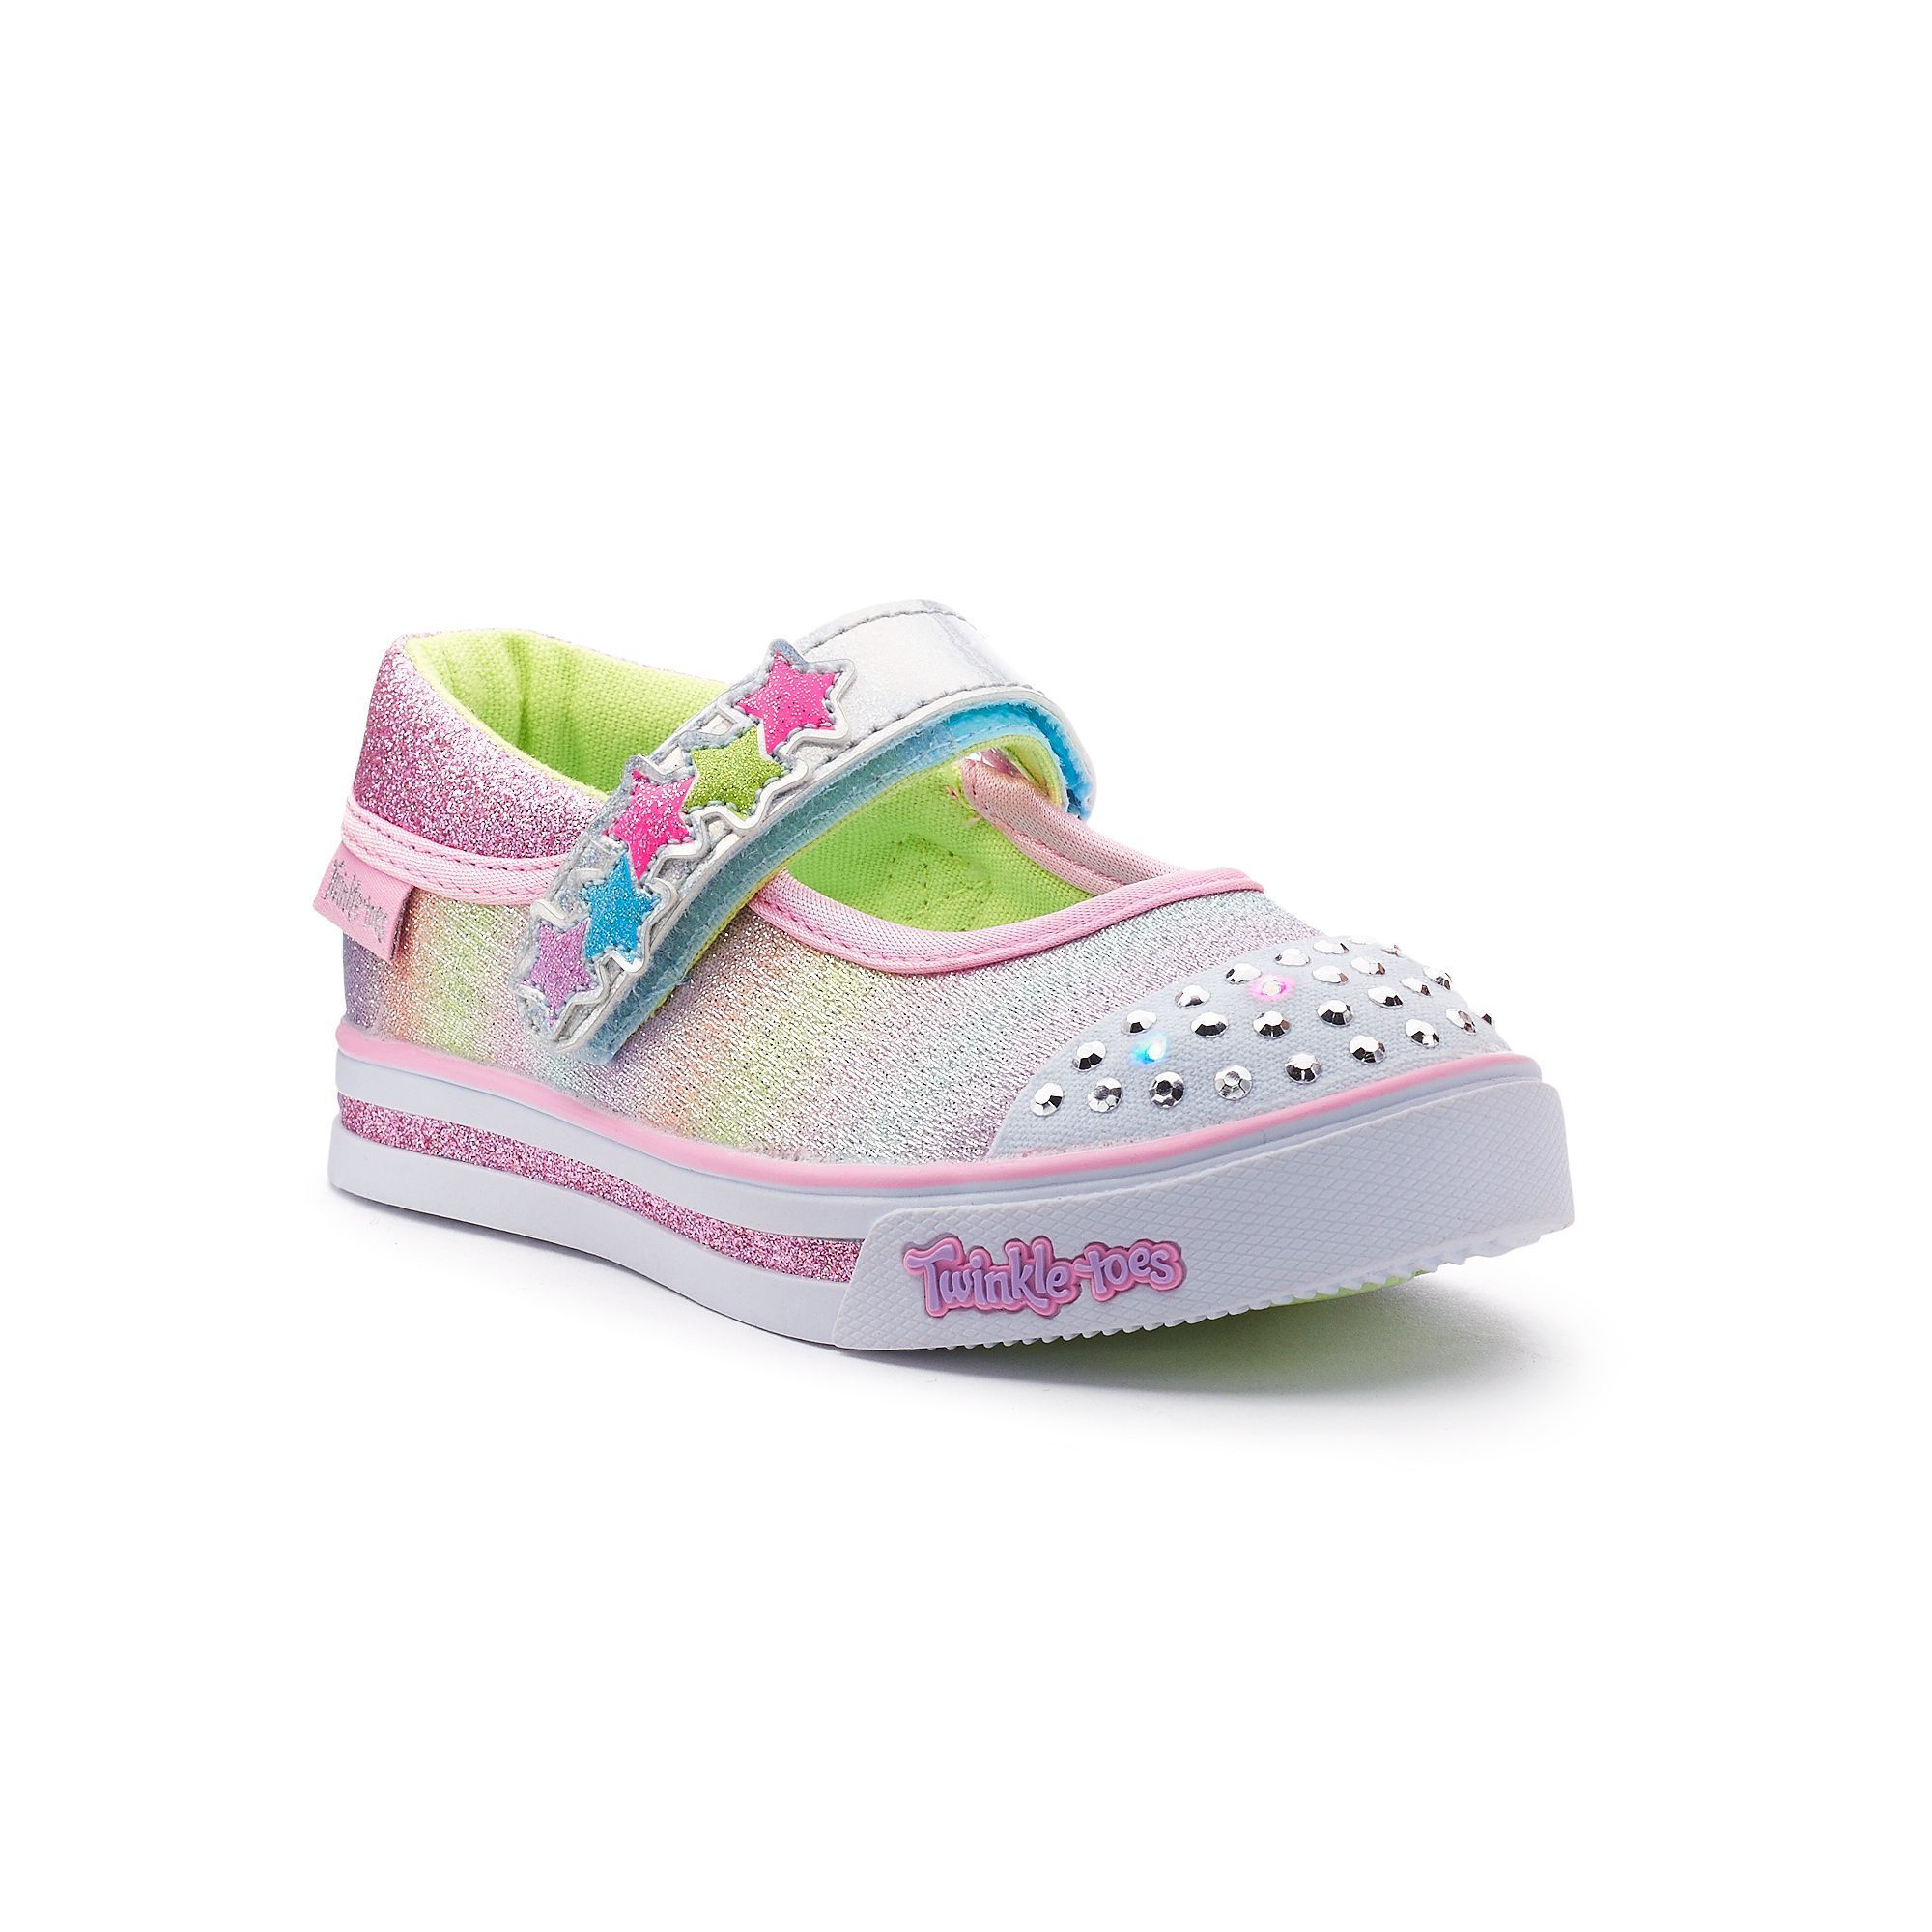 672955d92bee Skechers Twinkle Toes Sparkle Glitz Toddler Girls  Light-Up Shoes ...